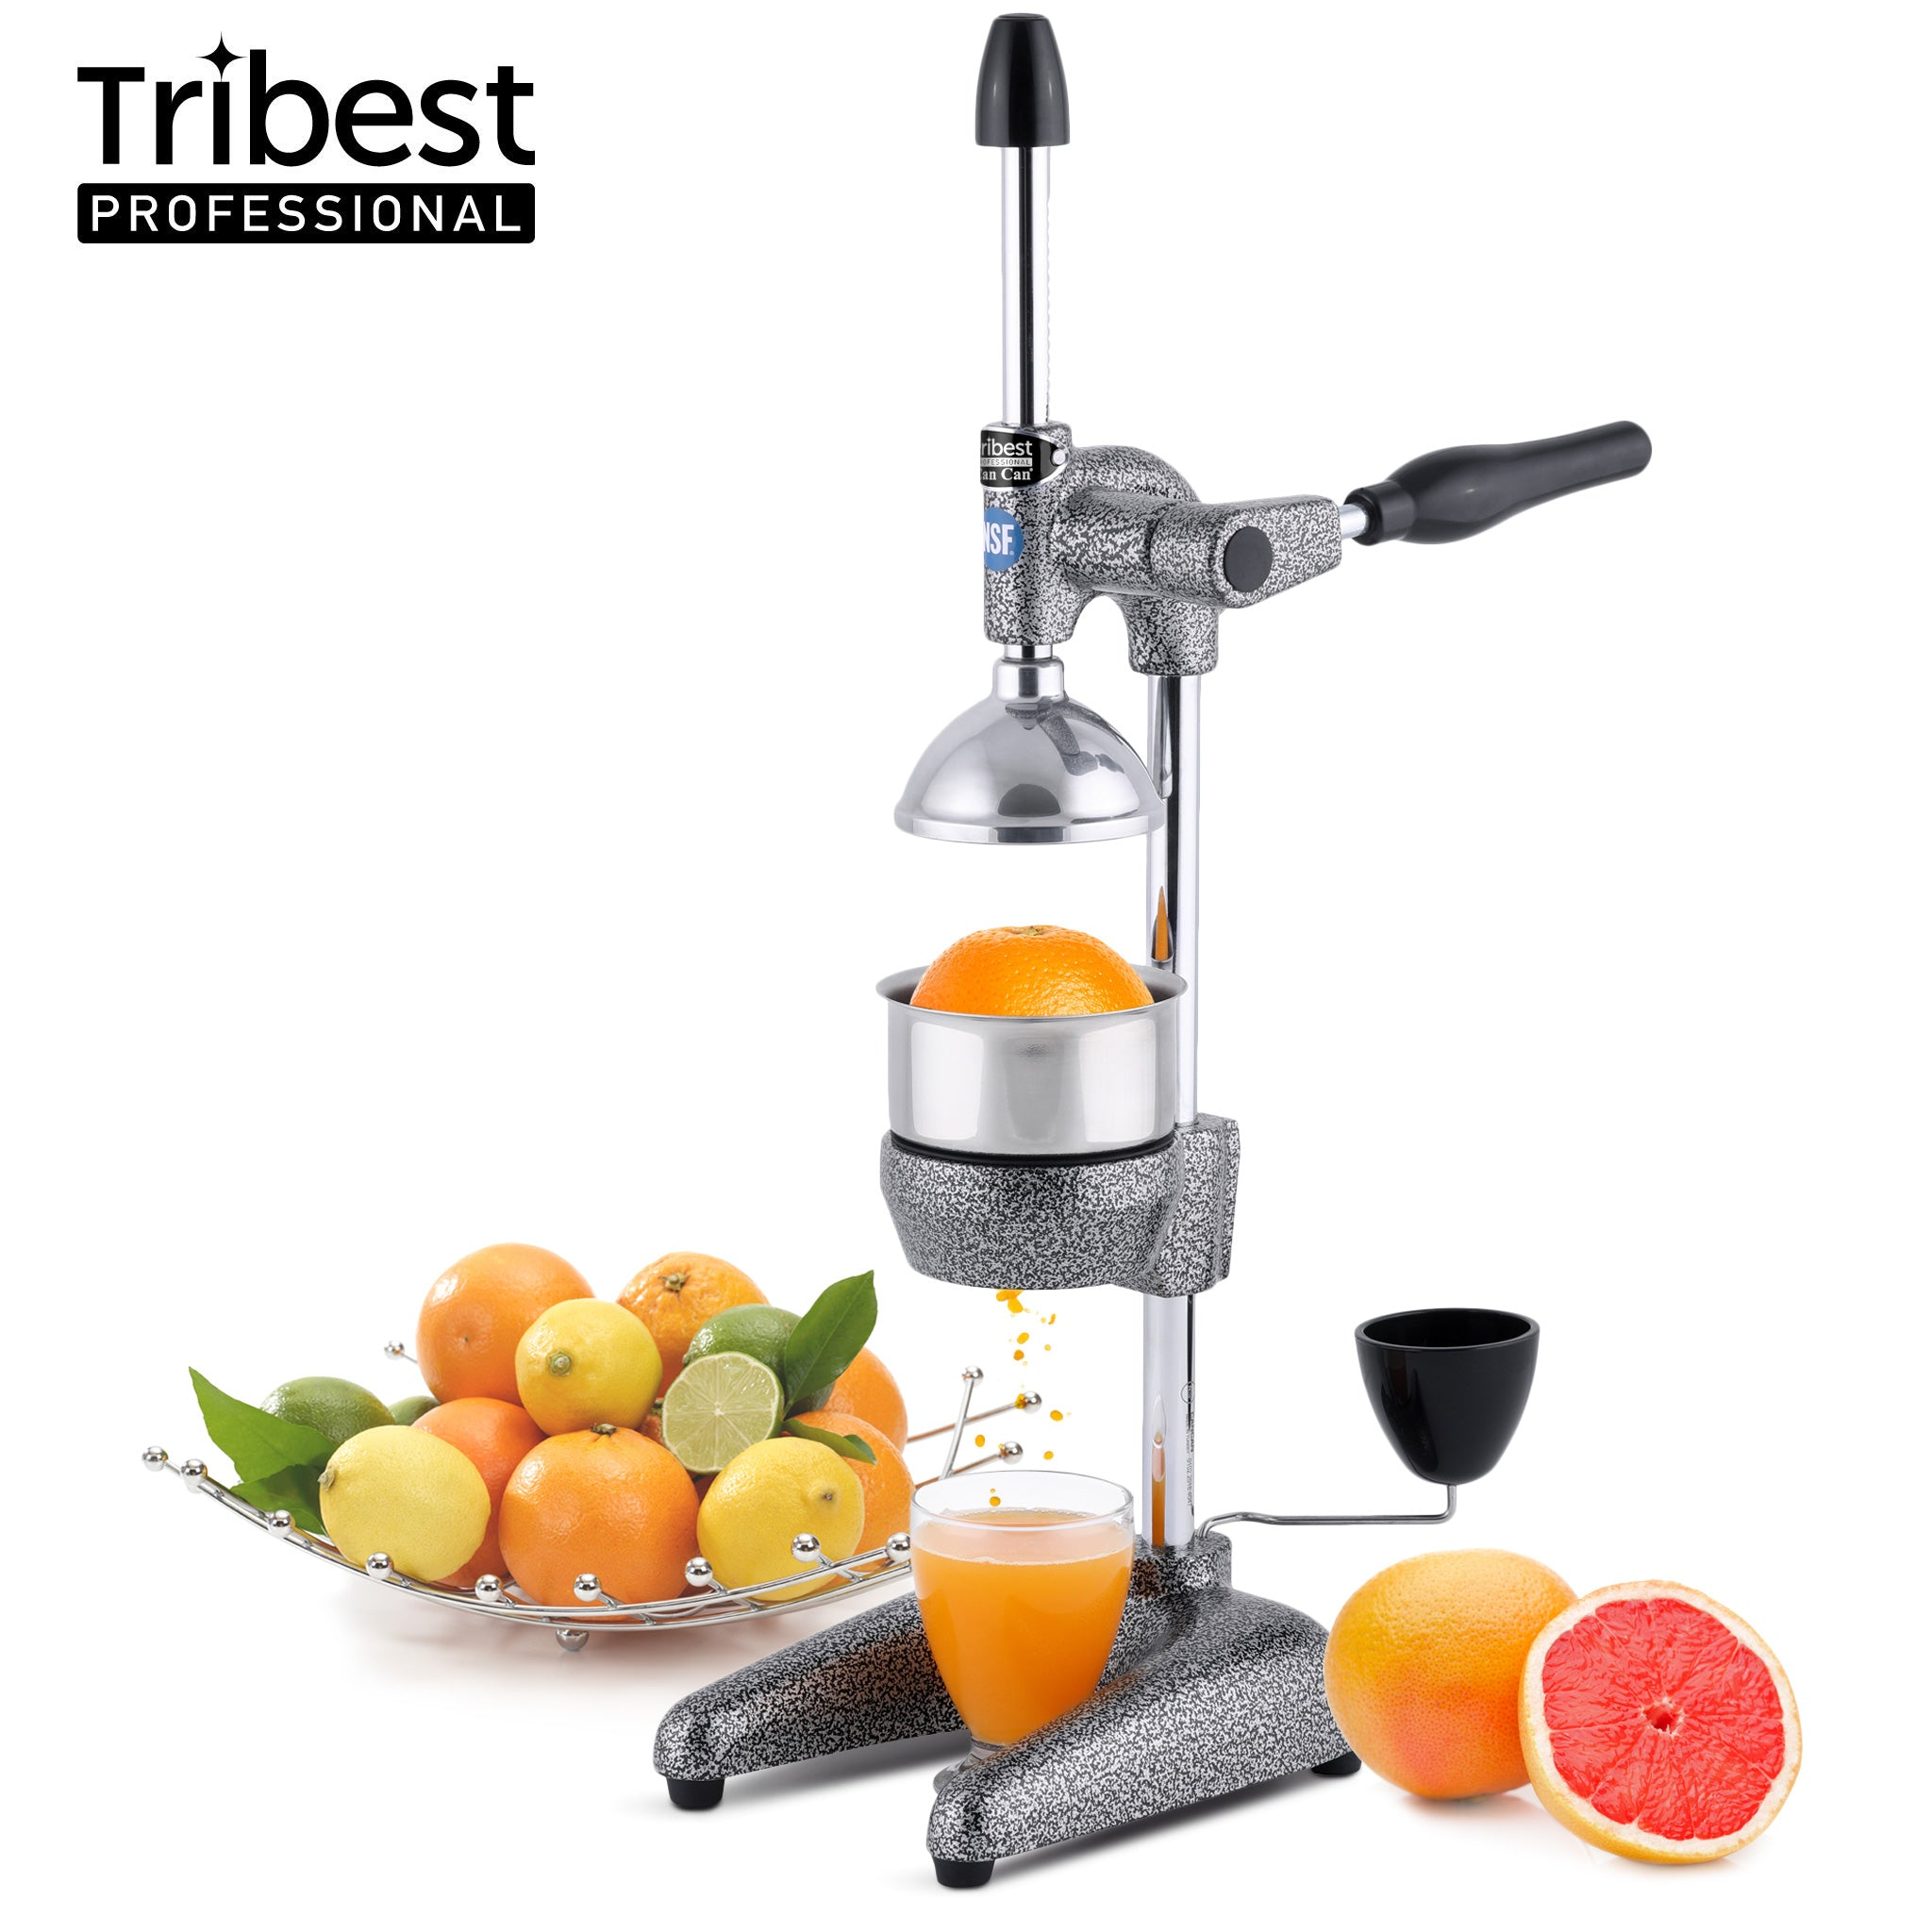 Tribest Professional Cancan Manual Juice Press MJP-100 in Gray